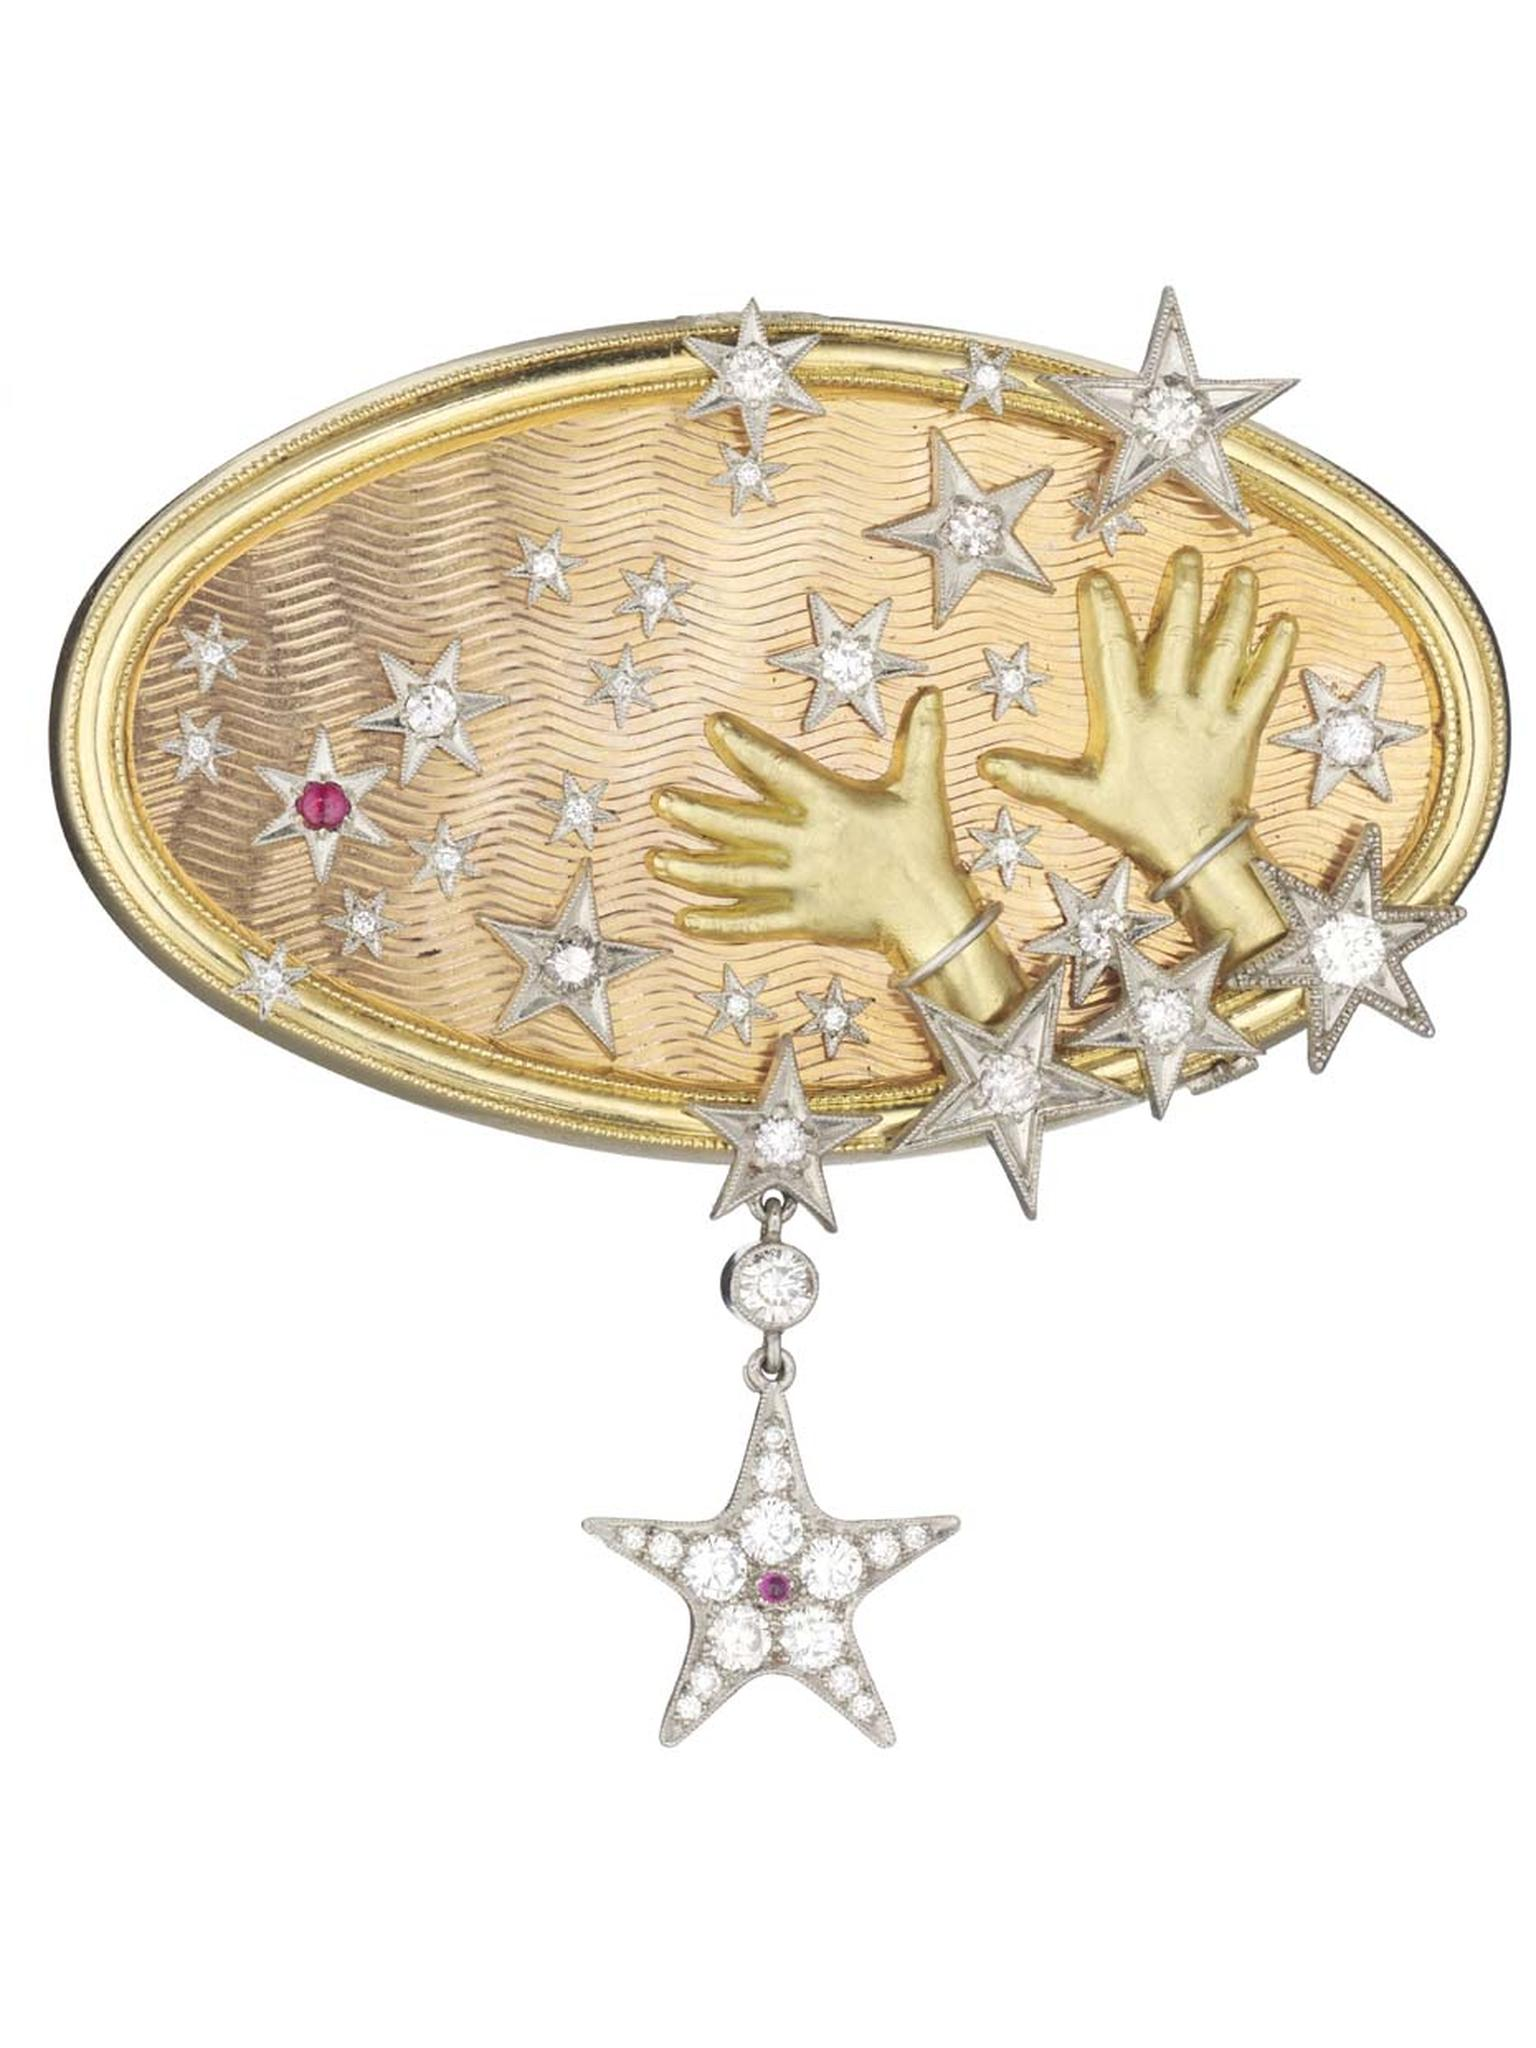 Anthony Lent's Hands to the Stars brooch features diamond-accented stars bursting from tiny hands that are fully realised, right down to the knuckle wrinkles and fingernails.